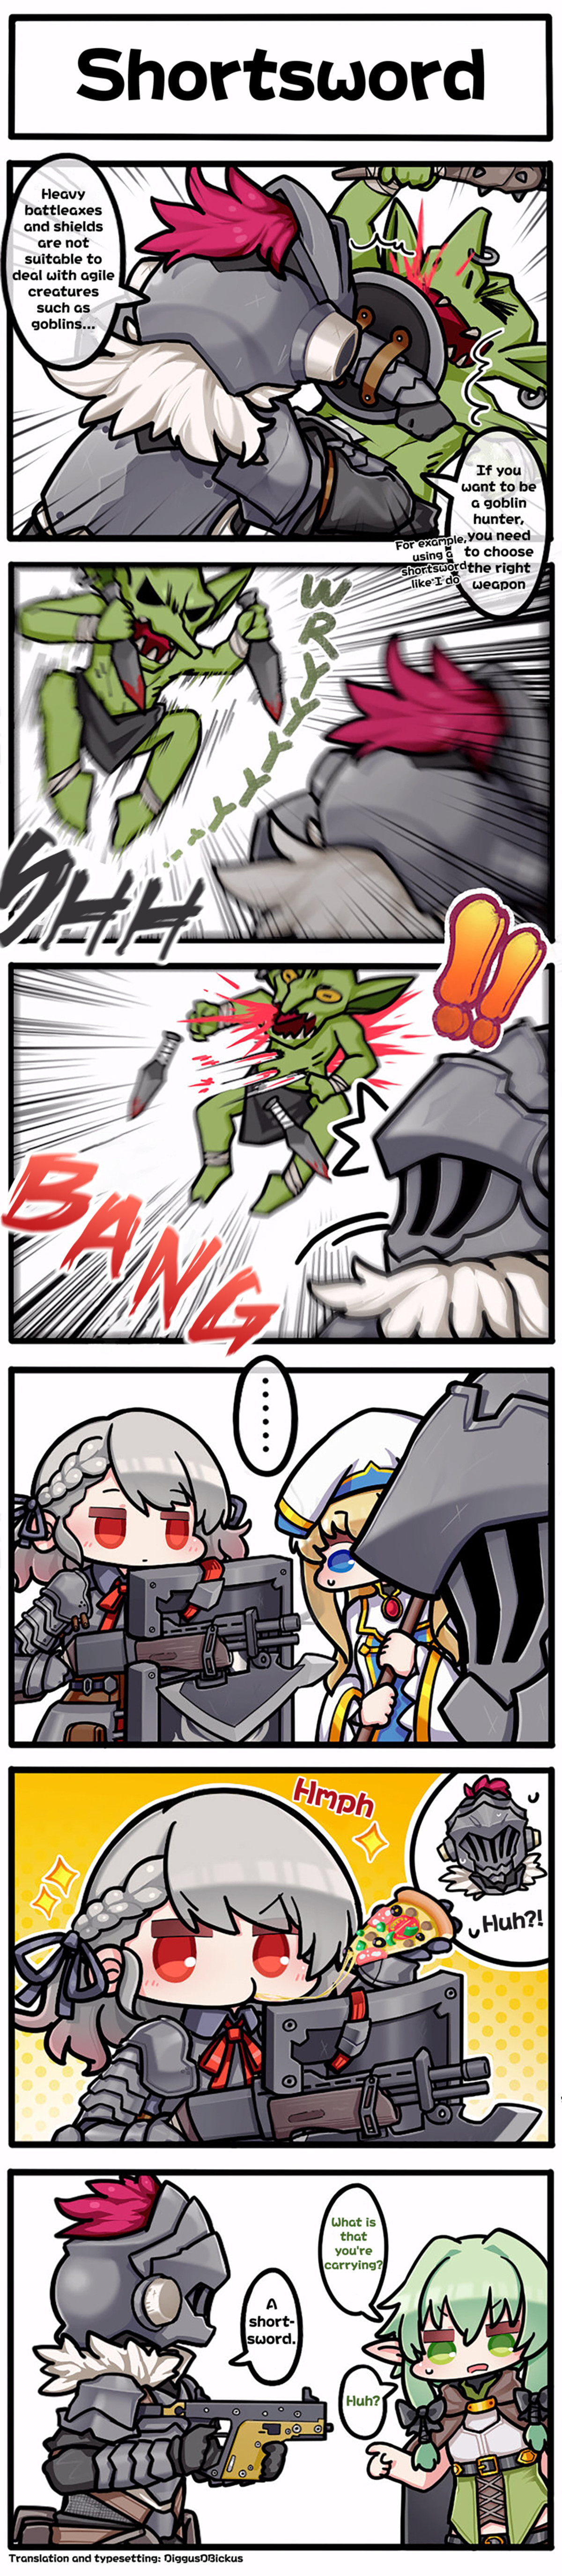 Shortsword. join list: GirlsFrontline (594 subs)Mention Clicks: 118400Msgs Sent: 438670Mention History join list:. That axe on the end of the spas is triggering me